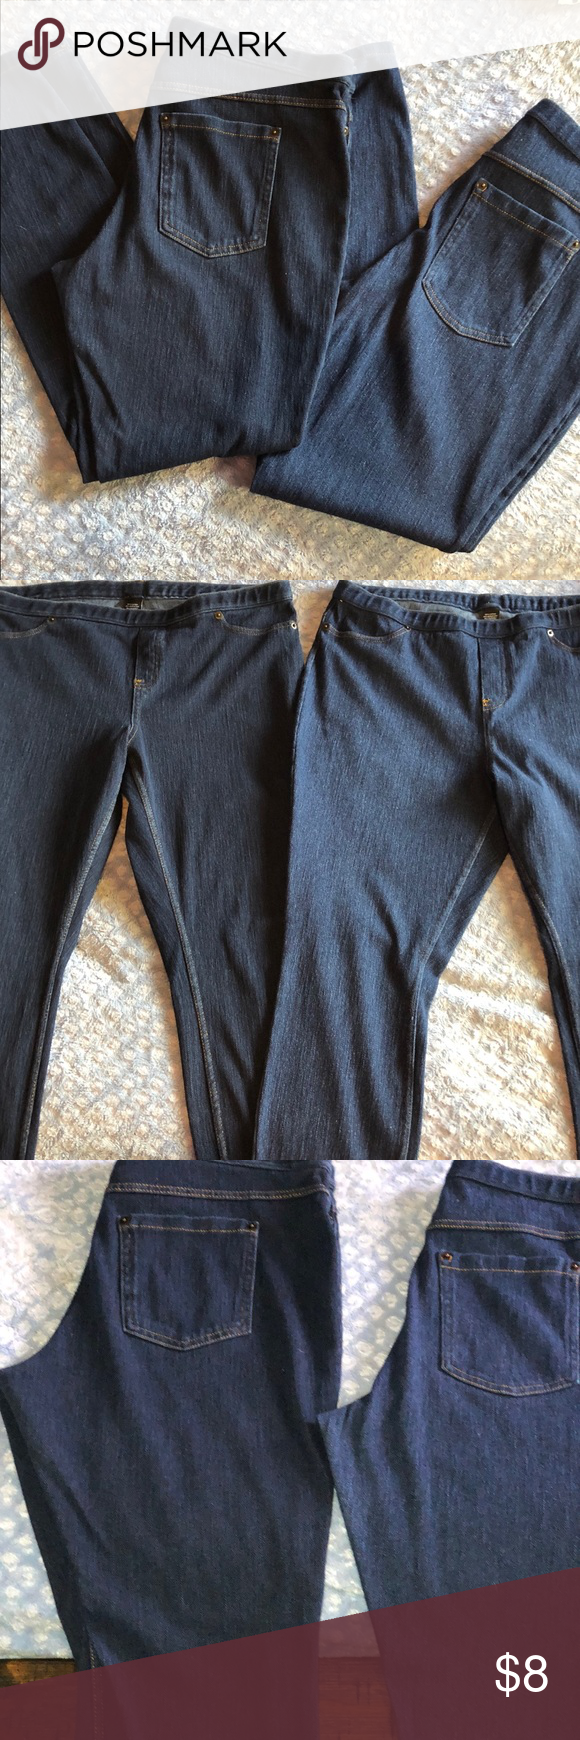 Denim stretch skinny jeans Two pair of identical skinny jeans, or jeggings. One pair are dark denim, one pair medium denim. Well kept, just can't fit them anymore! Jeans Skinny